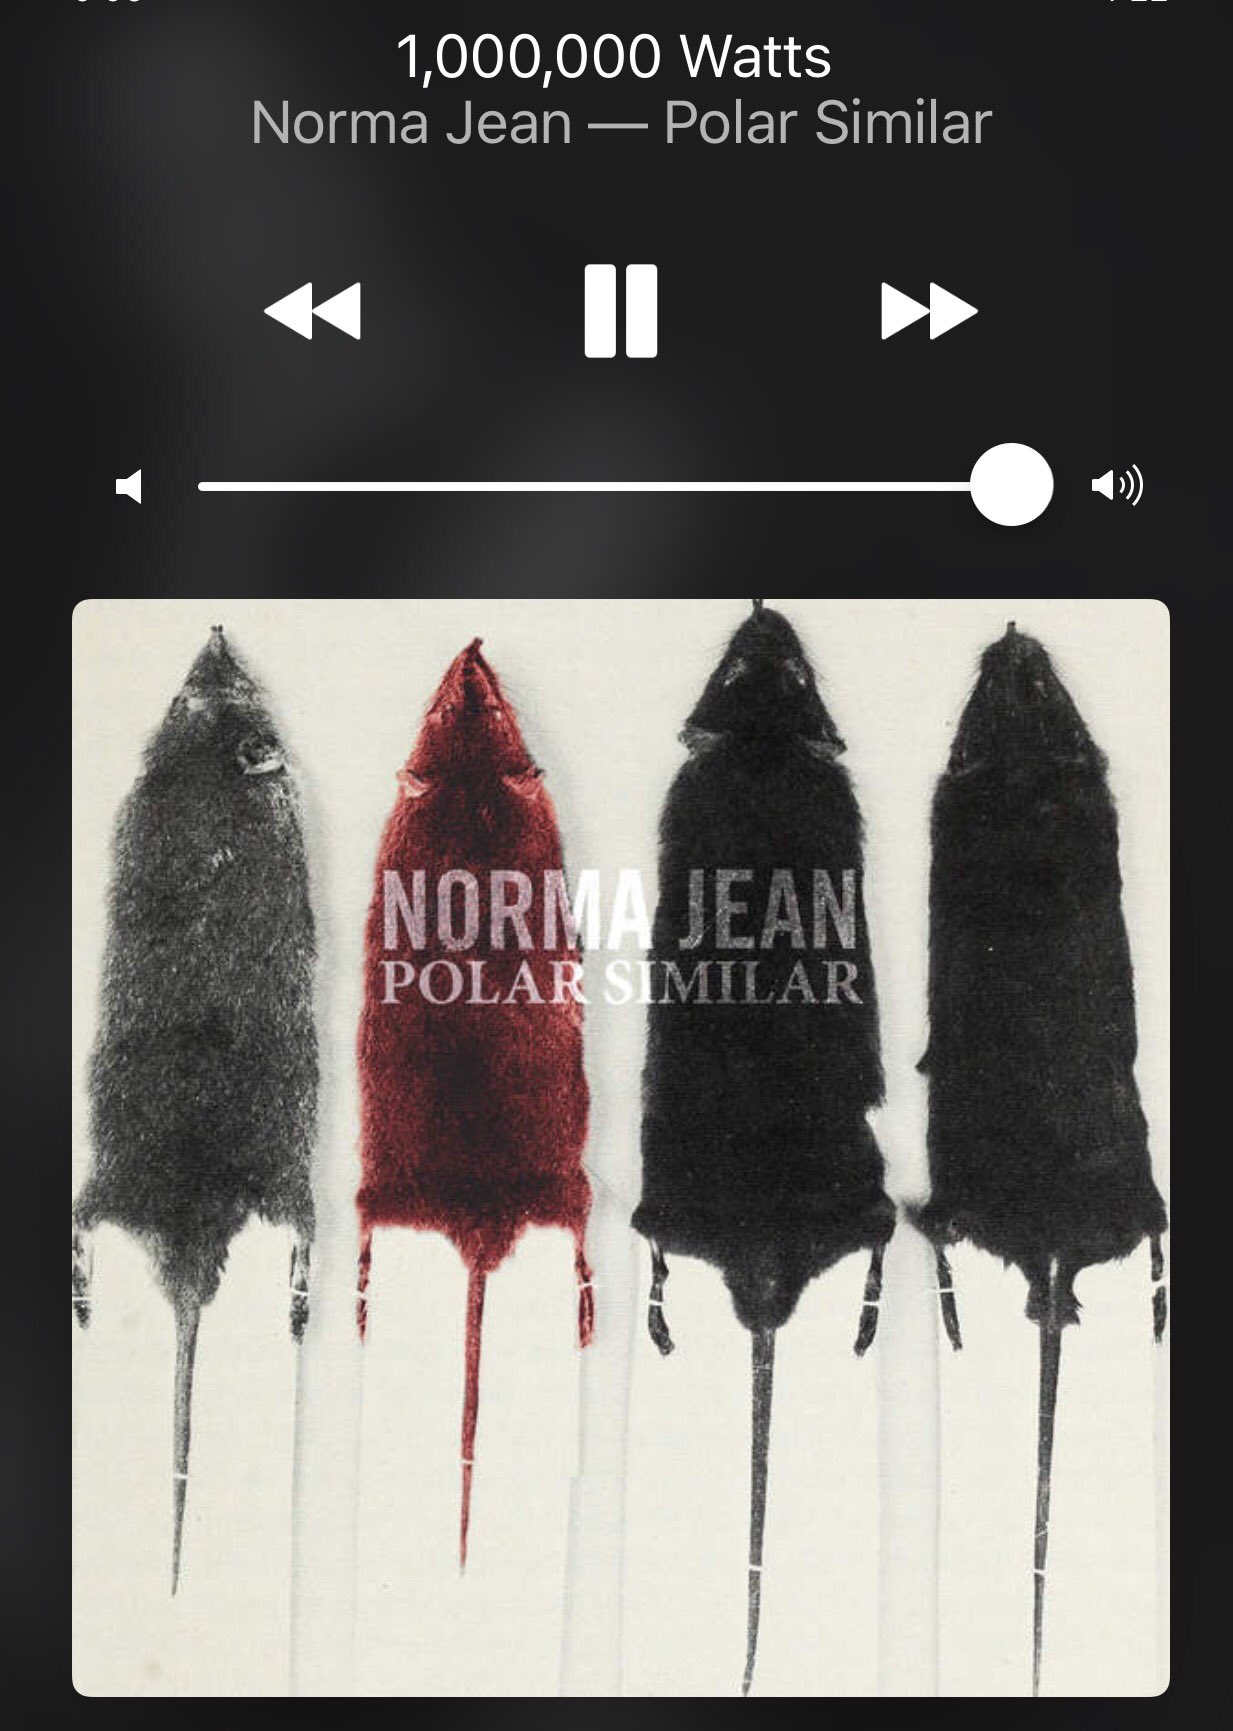 It's a @NormaJeanBand kinda morning. https://t.co/lGjv1irskt